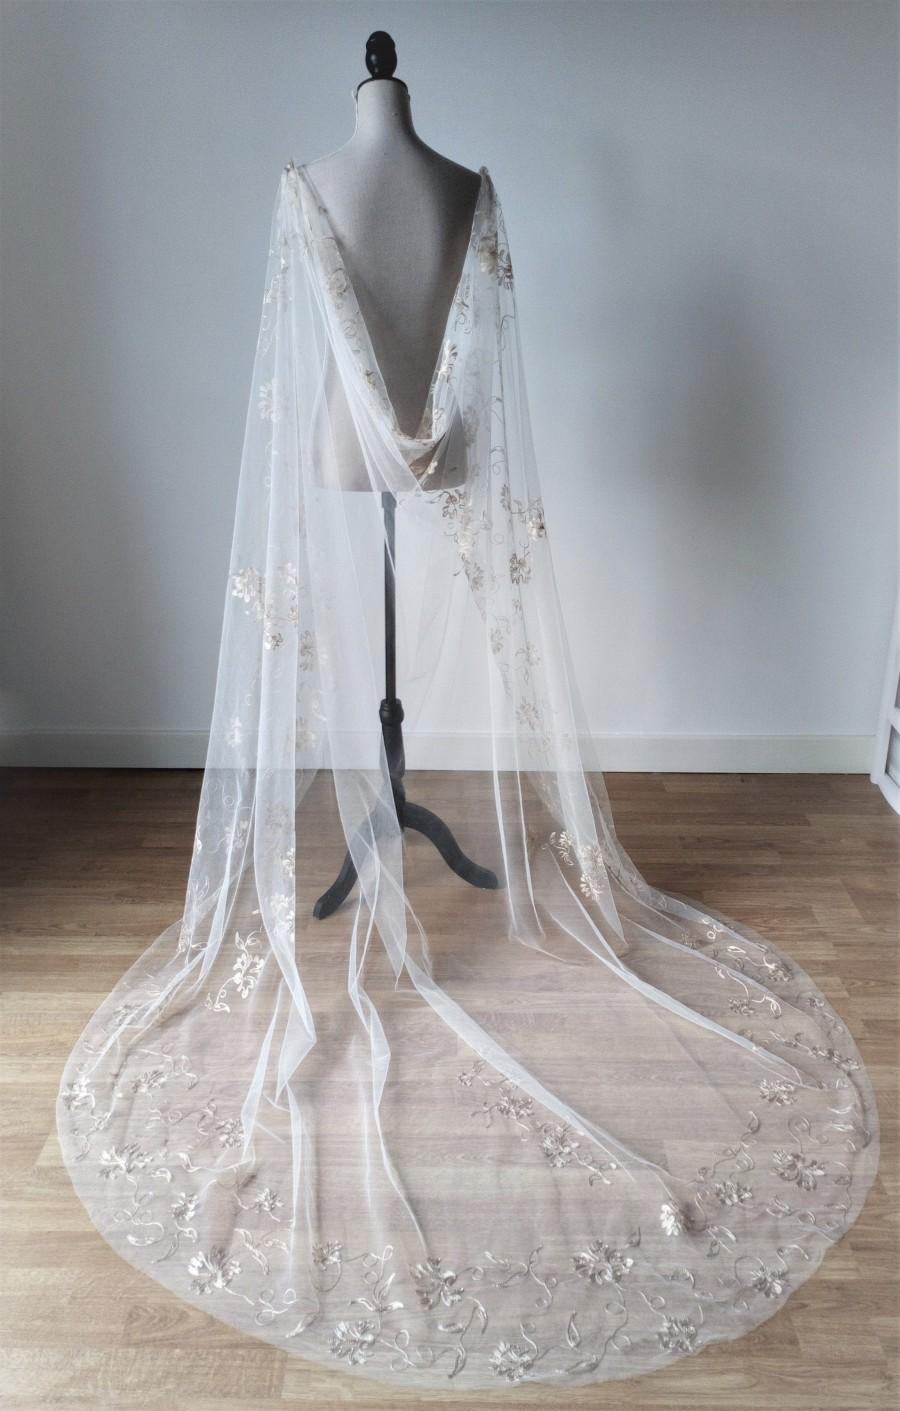 Wedding - Tulle Wedding Cloak, Wedding Cape Veil, Embroidered Wedding Cloak, Pagan Wedding Cape, Alternative Wedding Cape, Viking Wedding, Cape Veil